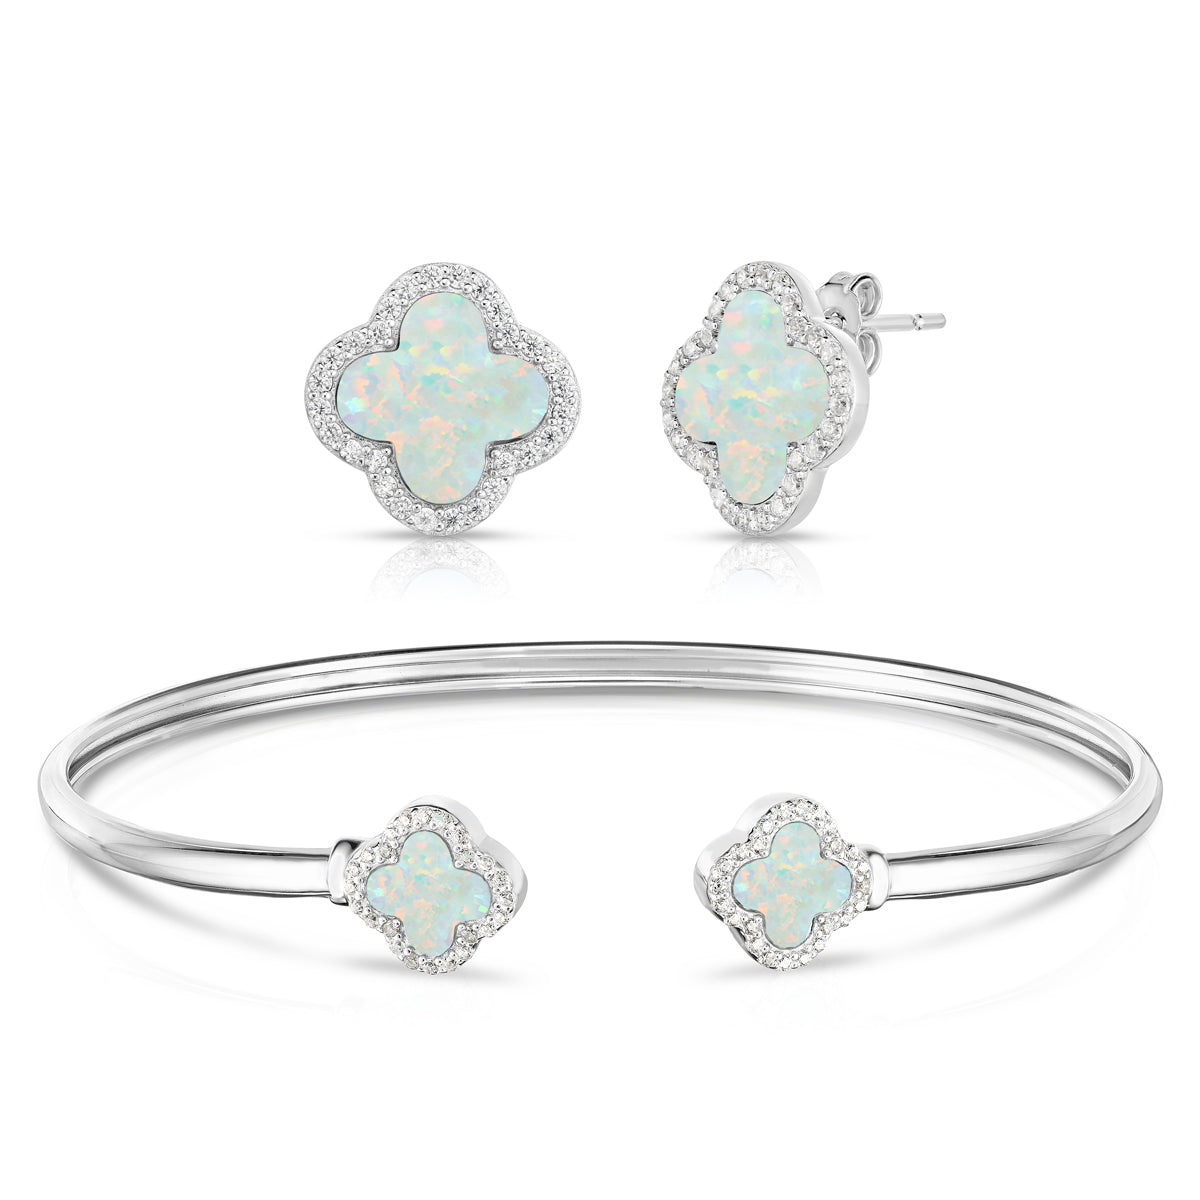 Opal Bracelet and Earring Set